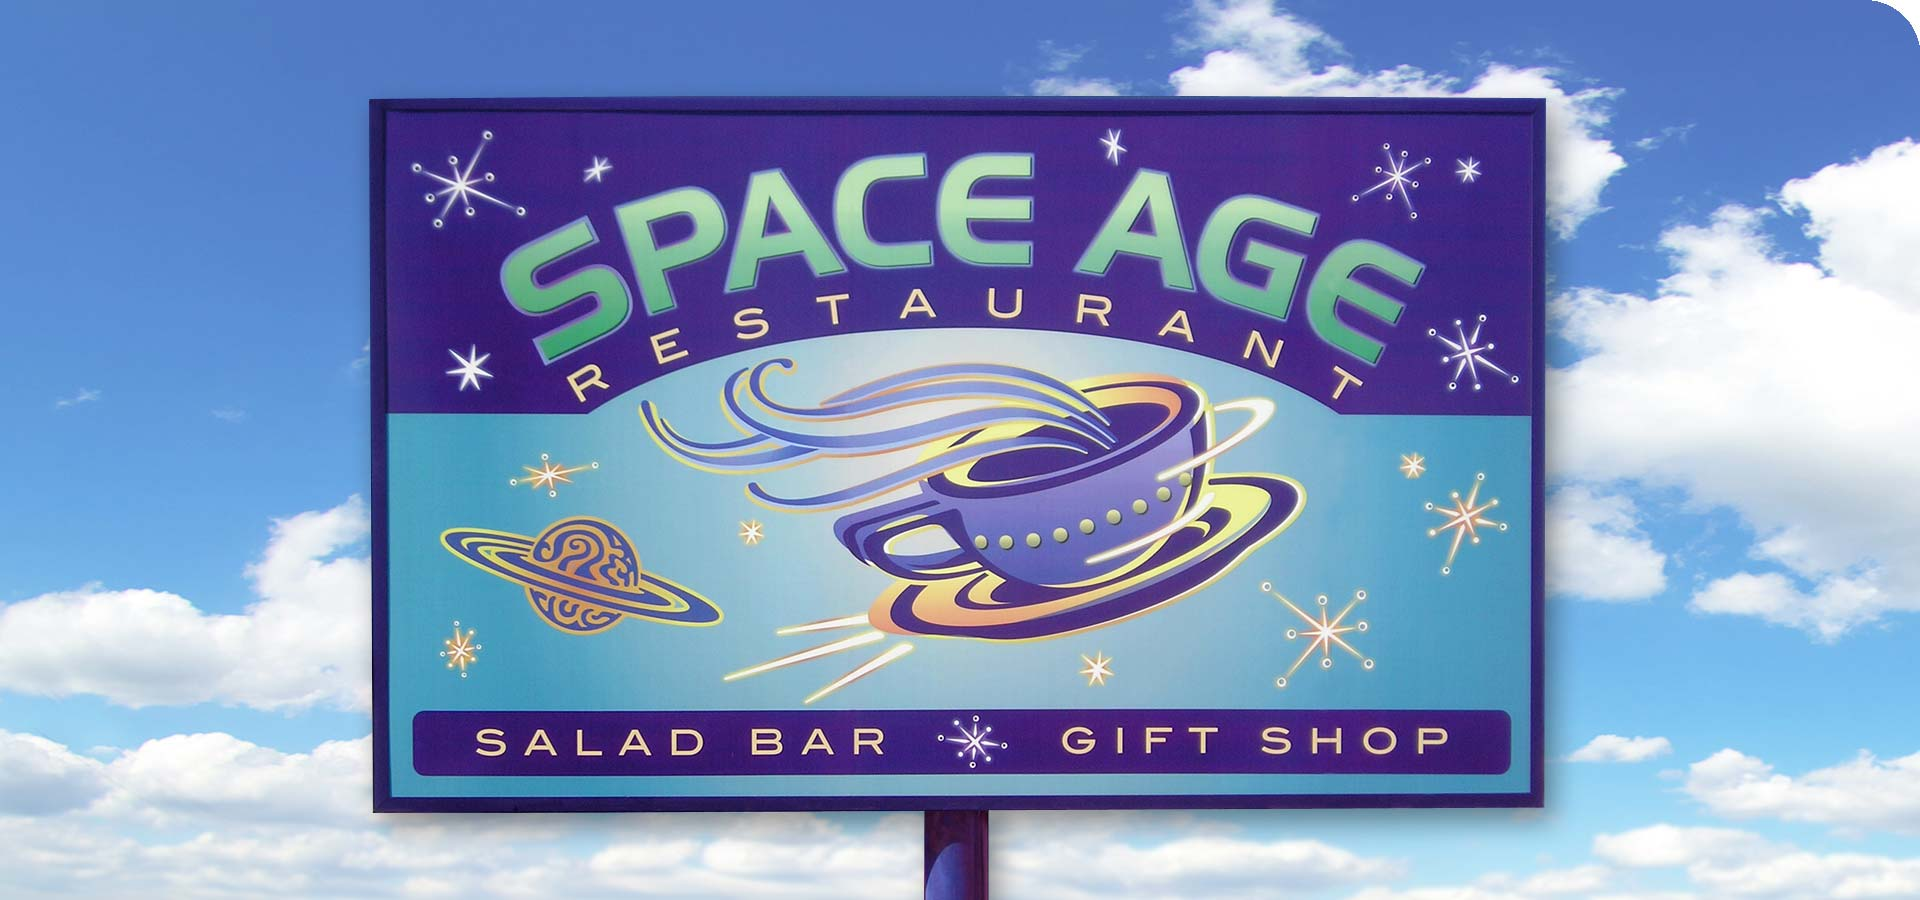 Space Age Restaurant